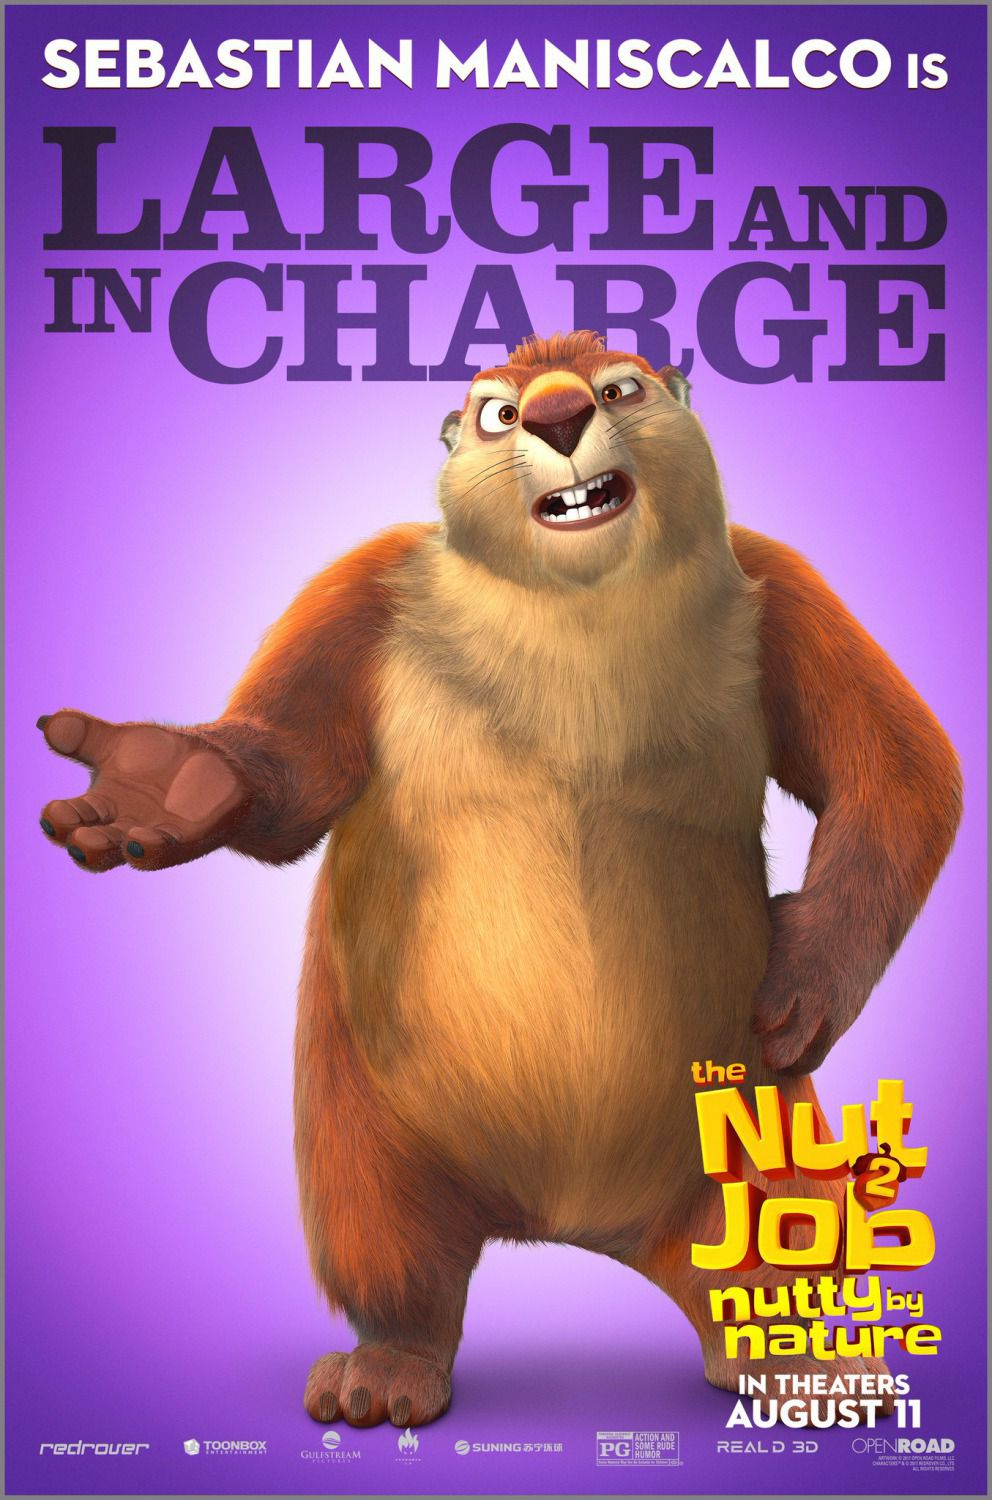 Film - The Nut Job 2 - Operazione Nocciolina 2 - Nutty by Nature - Large and in Charge